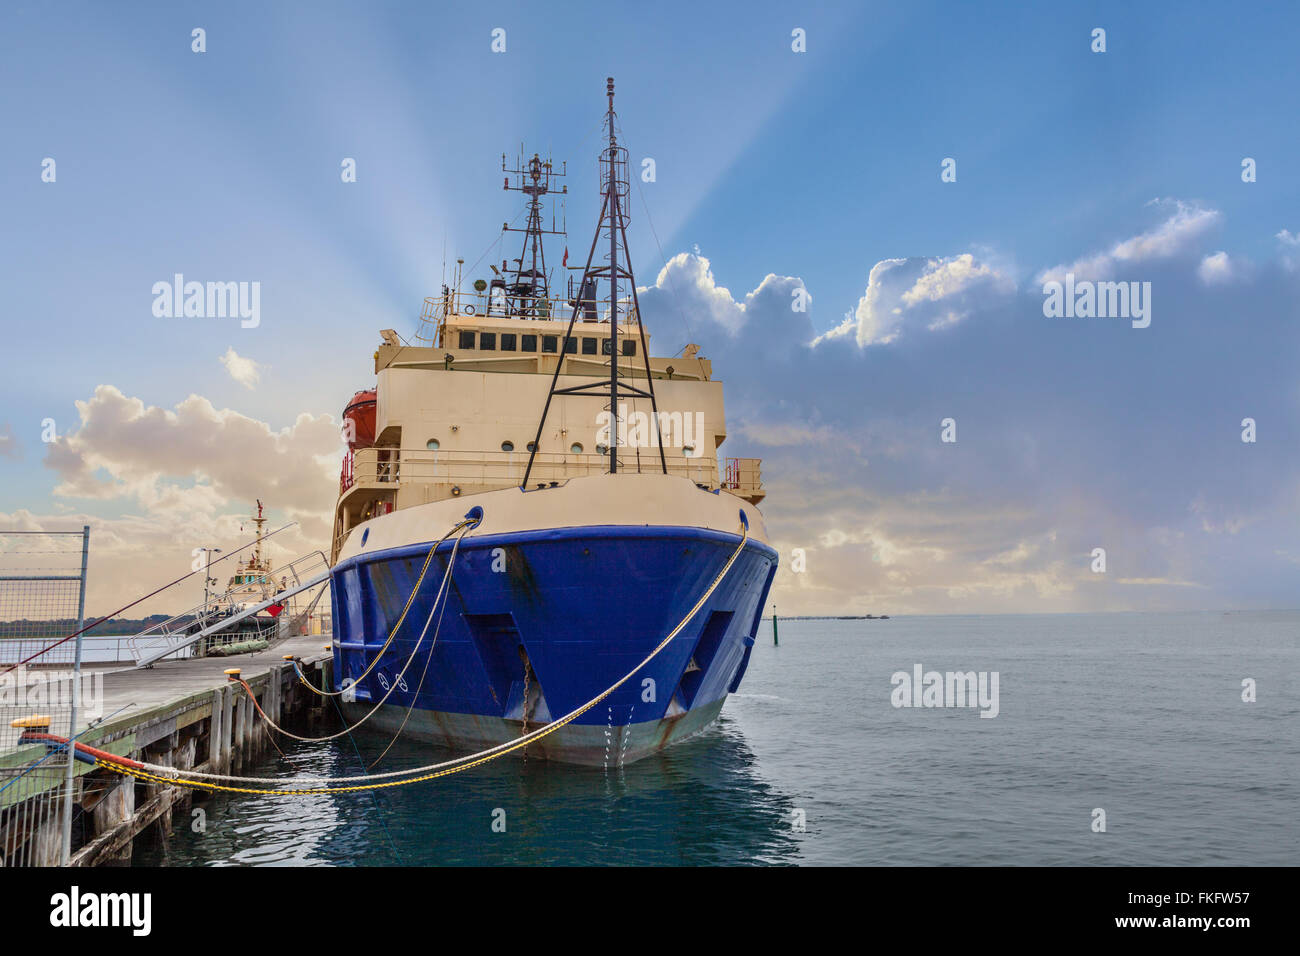 Moored nautical vessel at a pier with sun rays shining behind - Stock Image